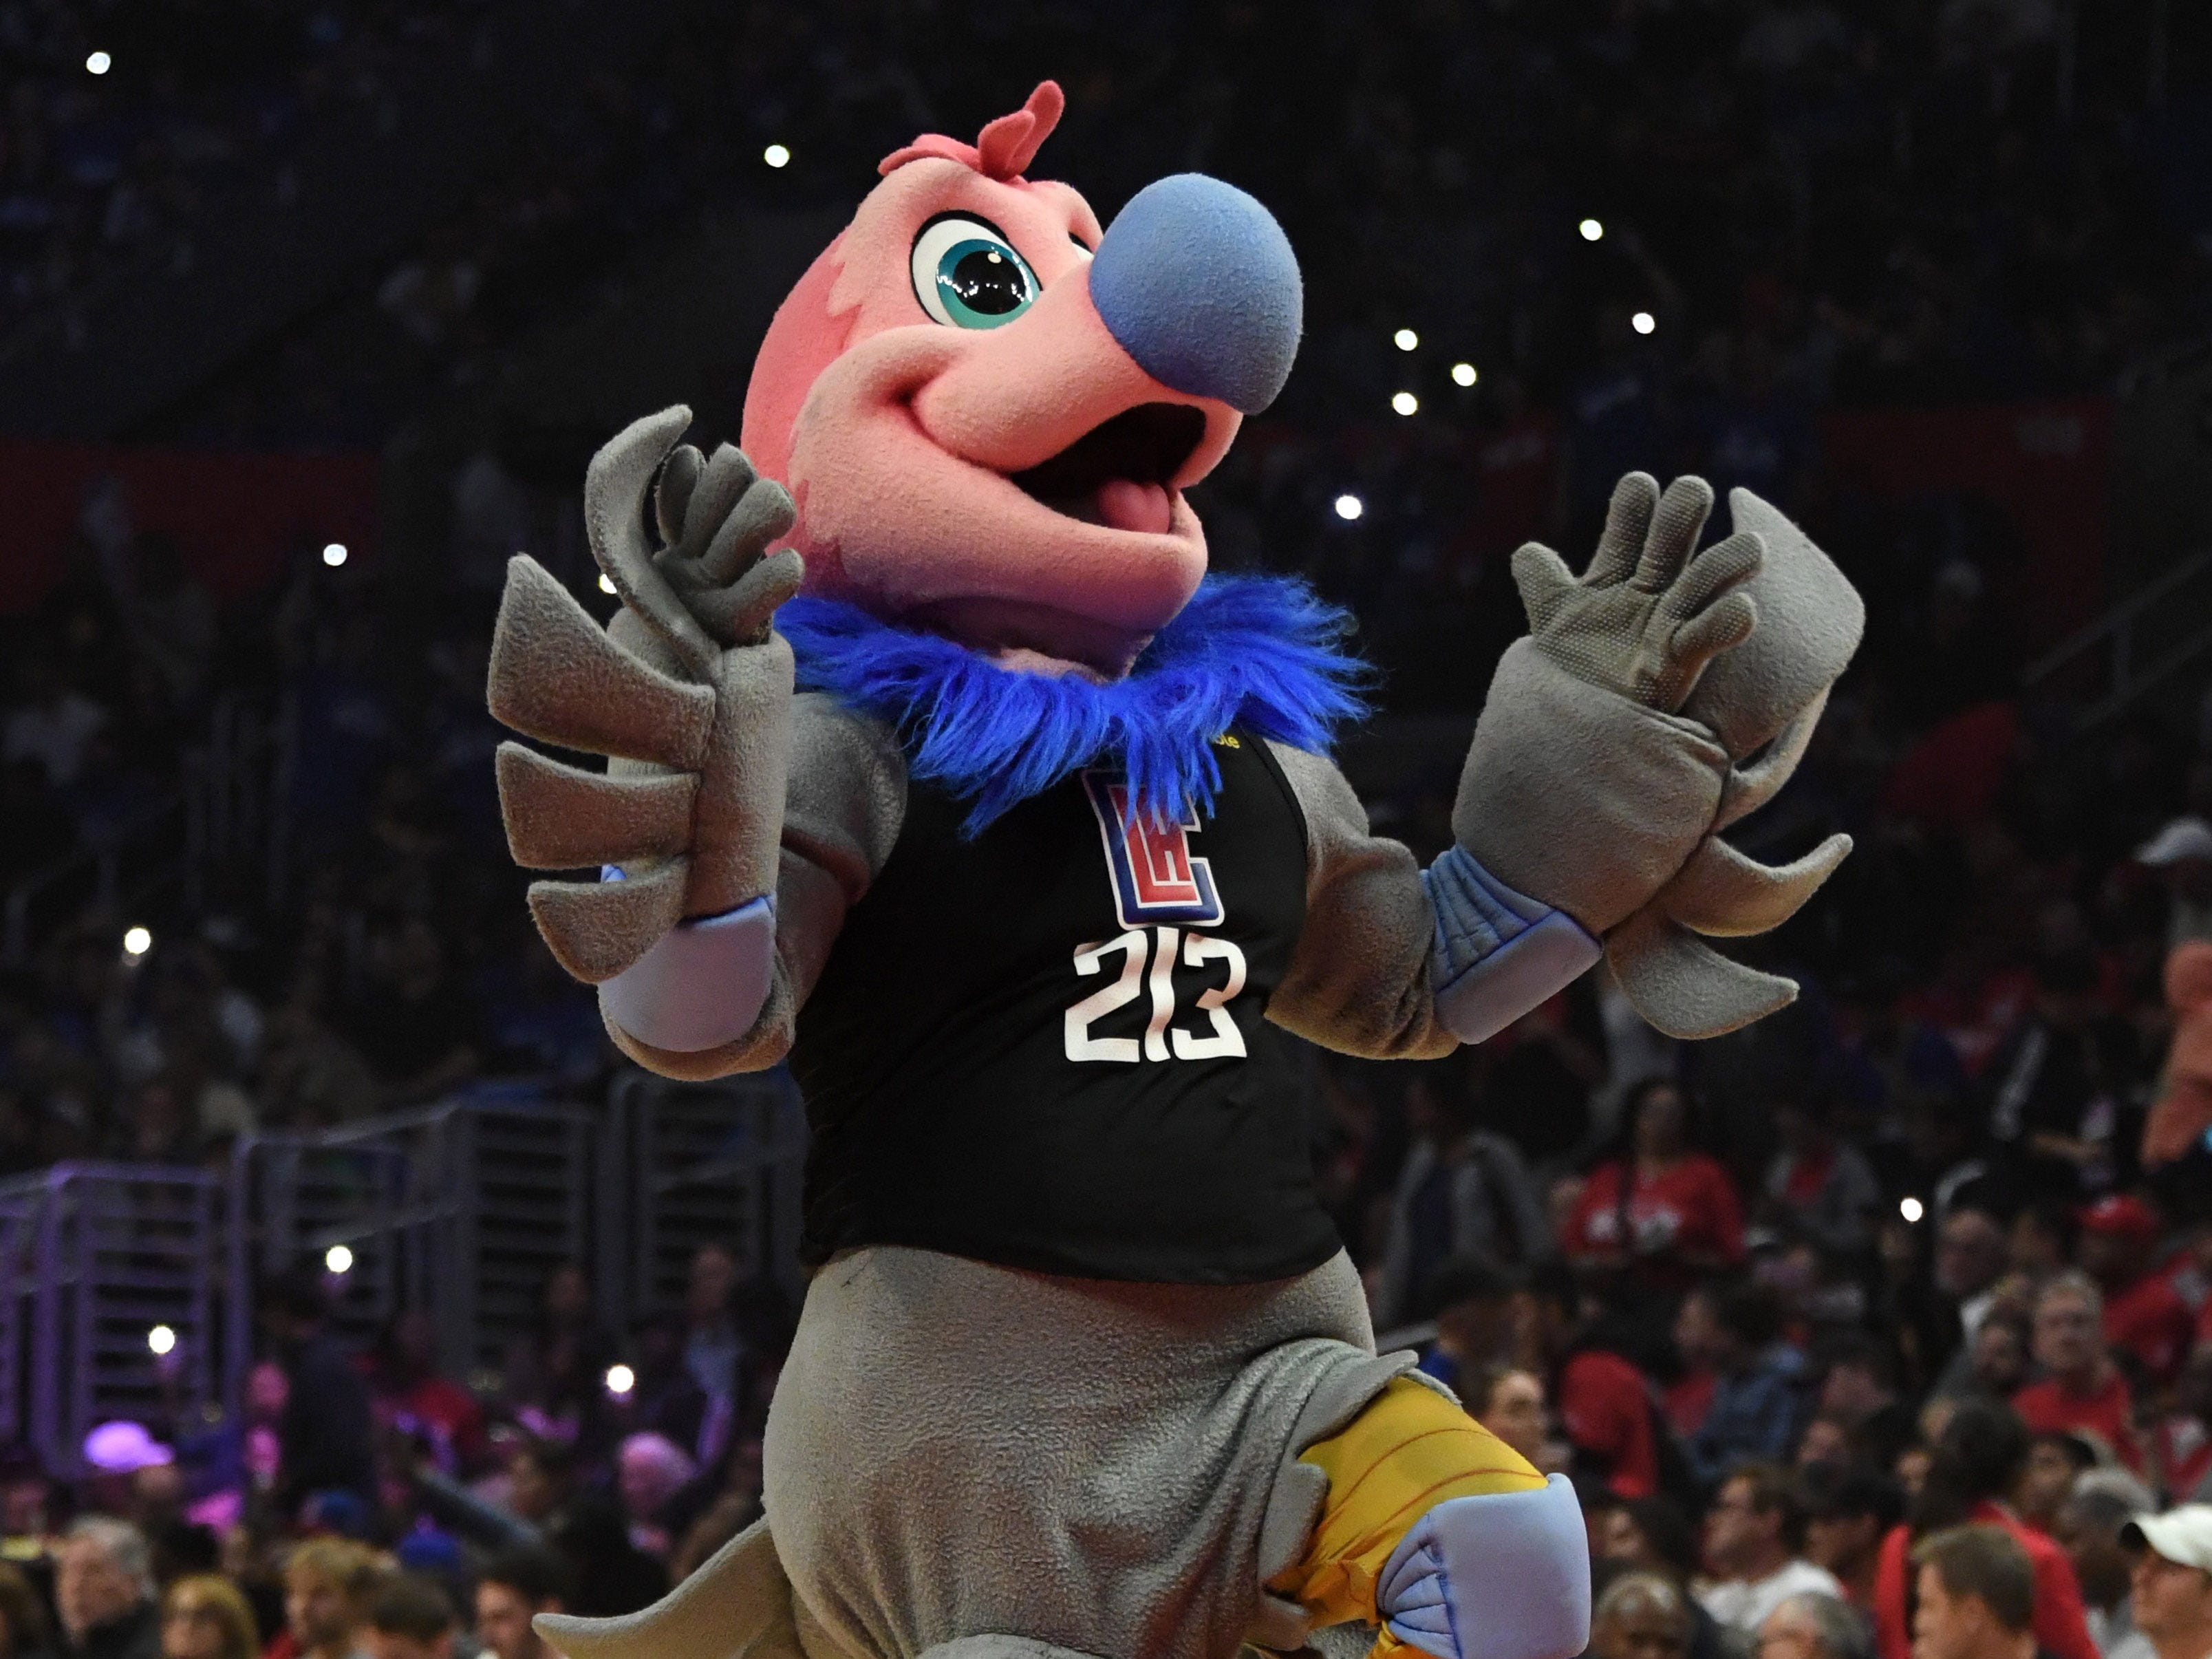 April 26: Clippers mascot Chuck the Condor during Game 6 against the Warriors.